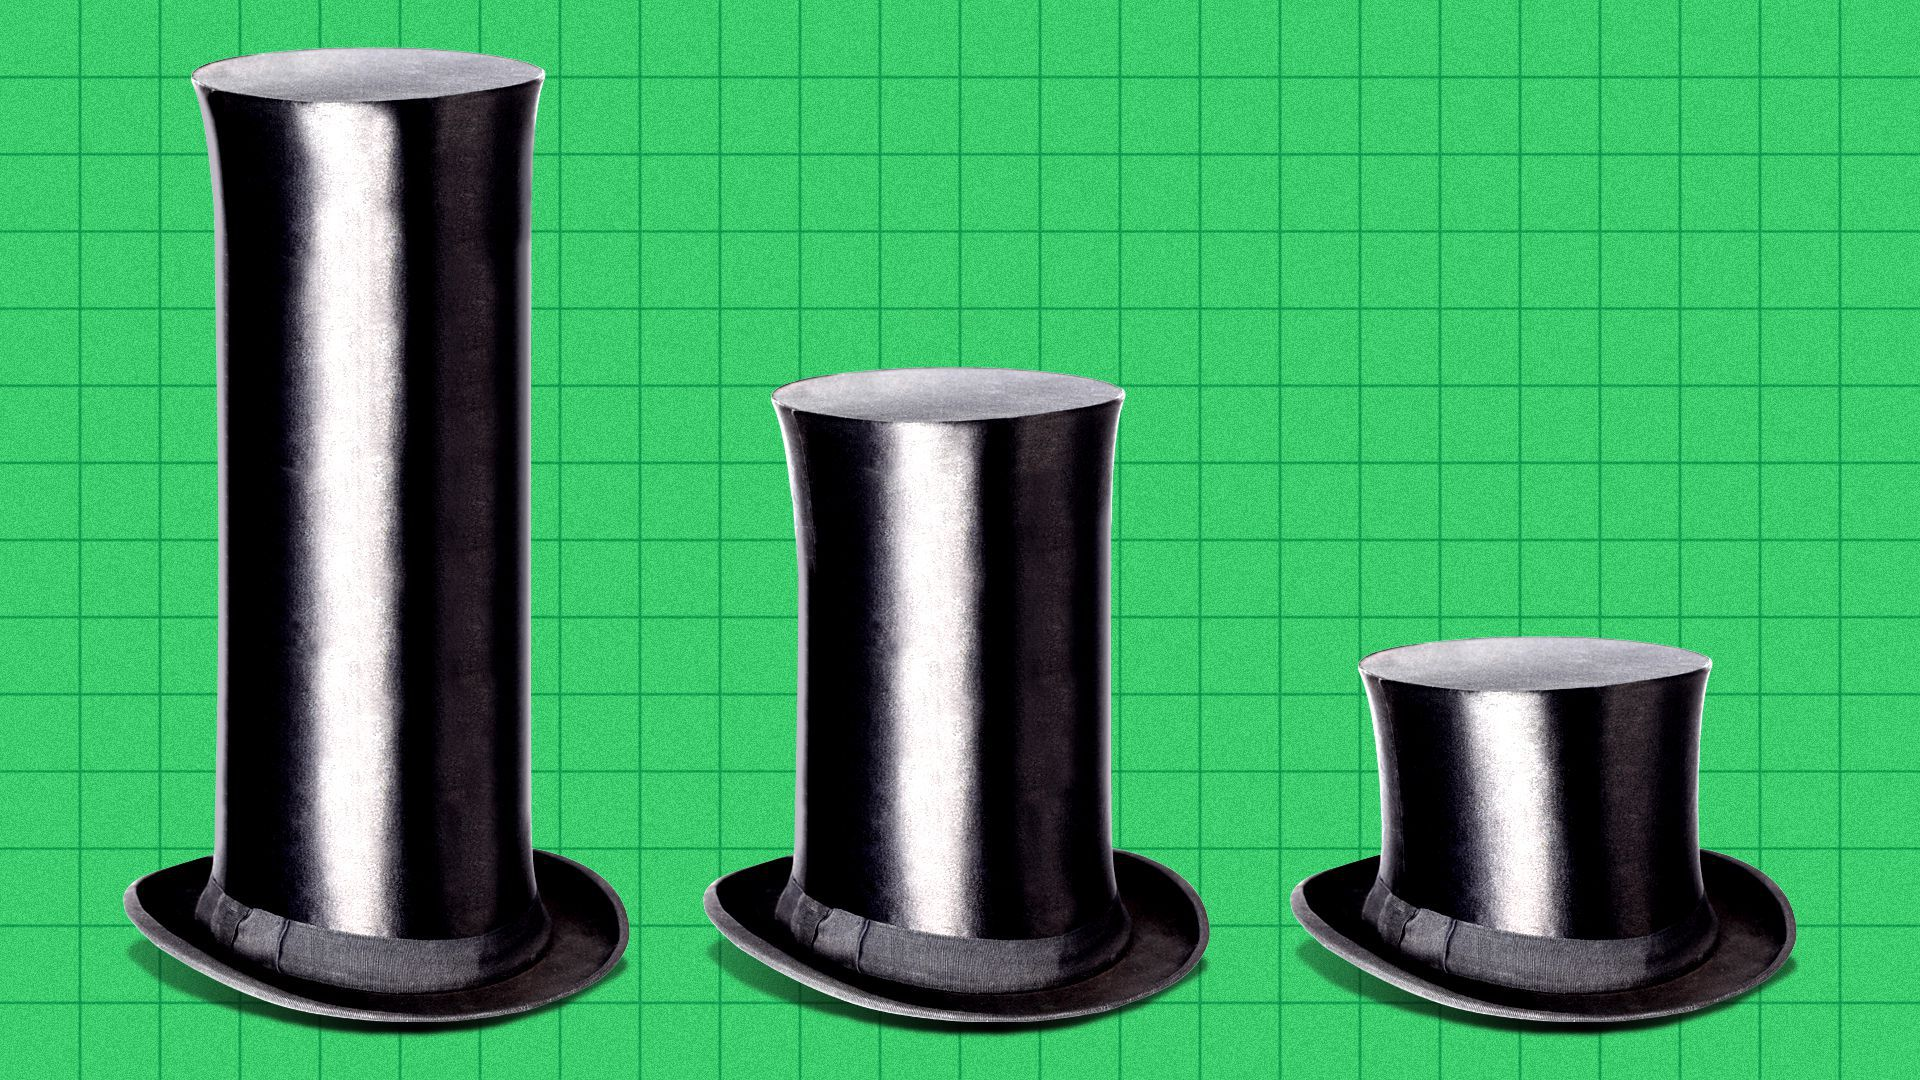 Illustration of a bar chart made of top hats of declining sizes.